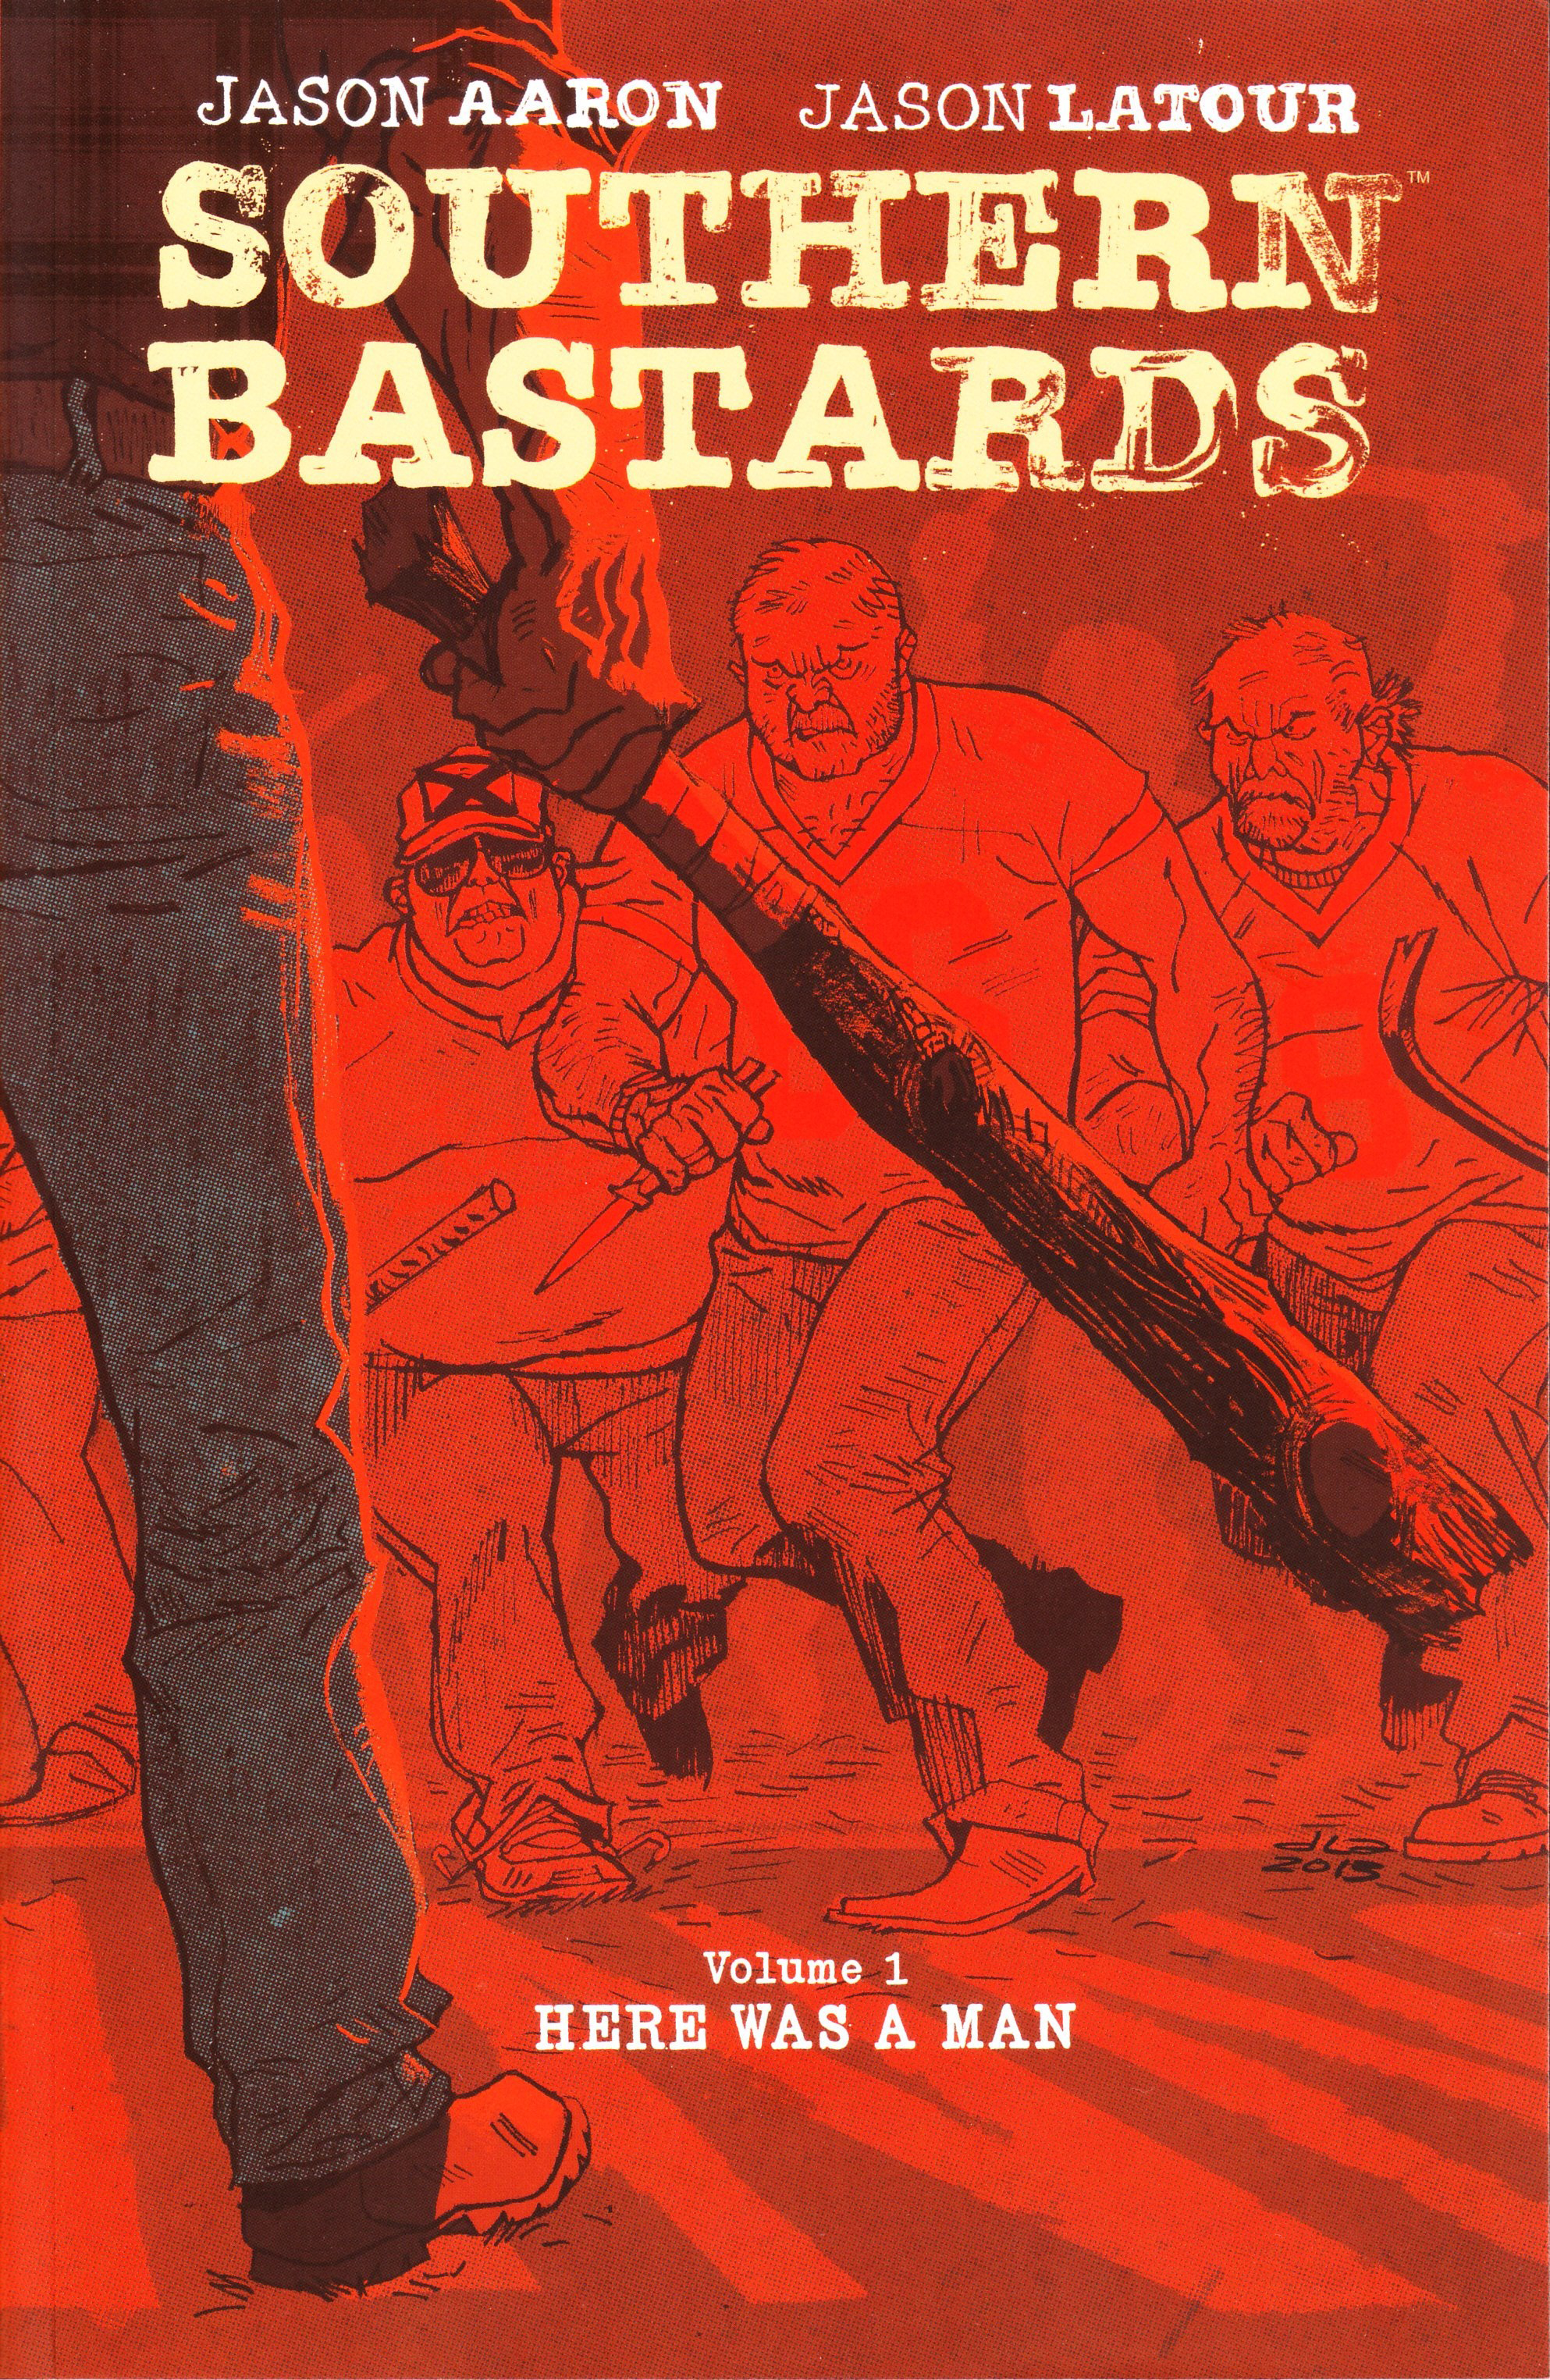 SOUTHERN BASTARDS TP VOL 01 HERE WAS A MAN (JUL140517) (MR)